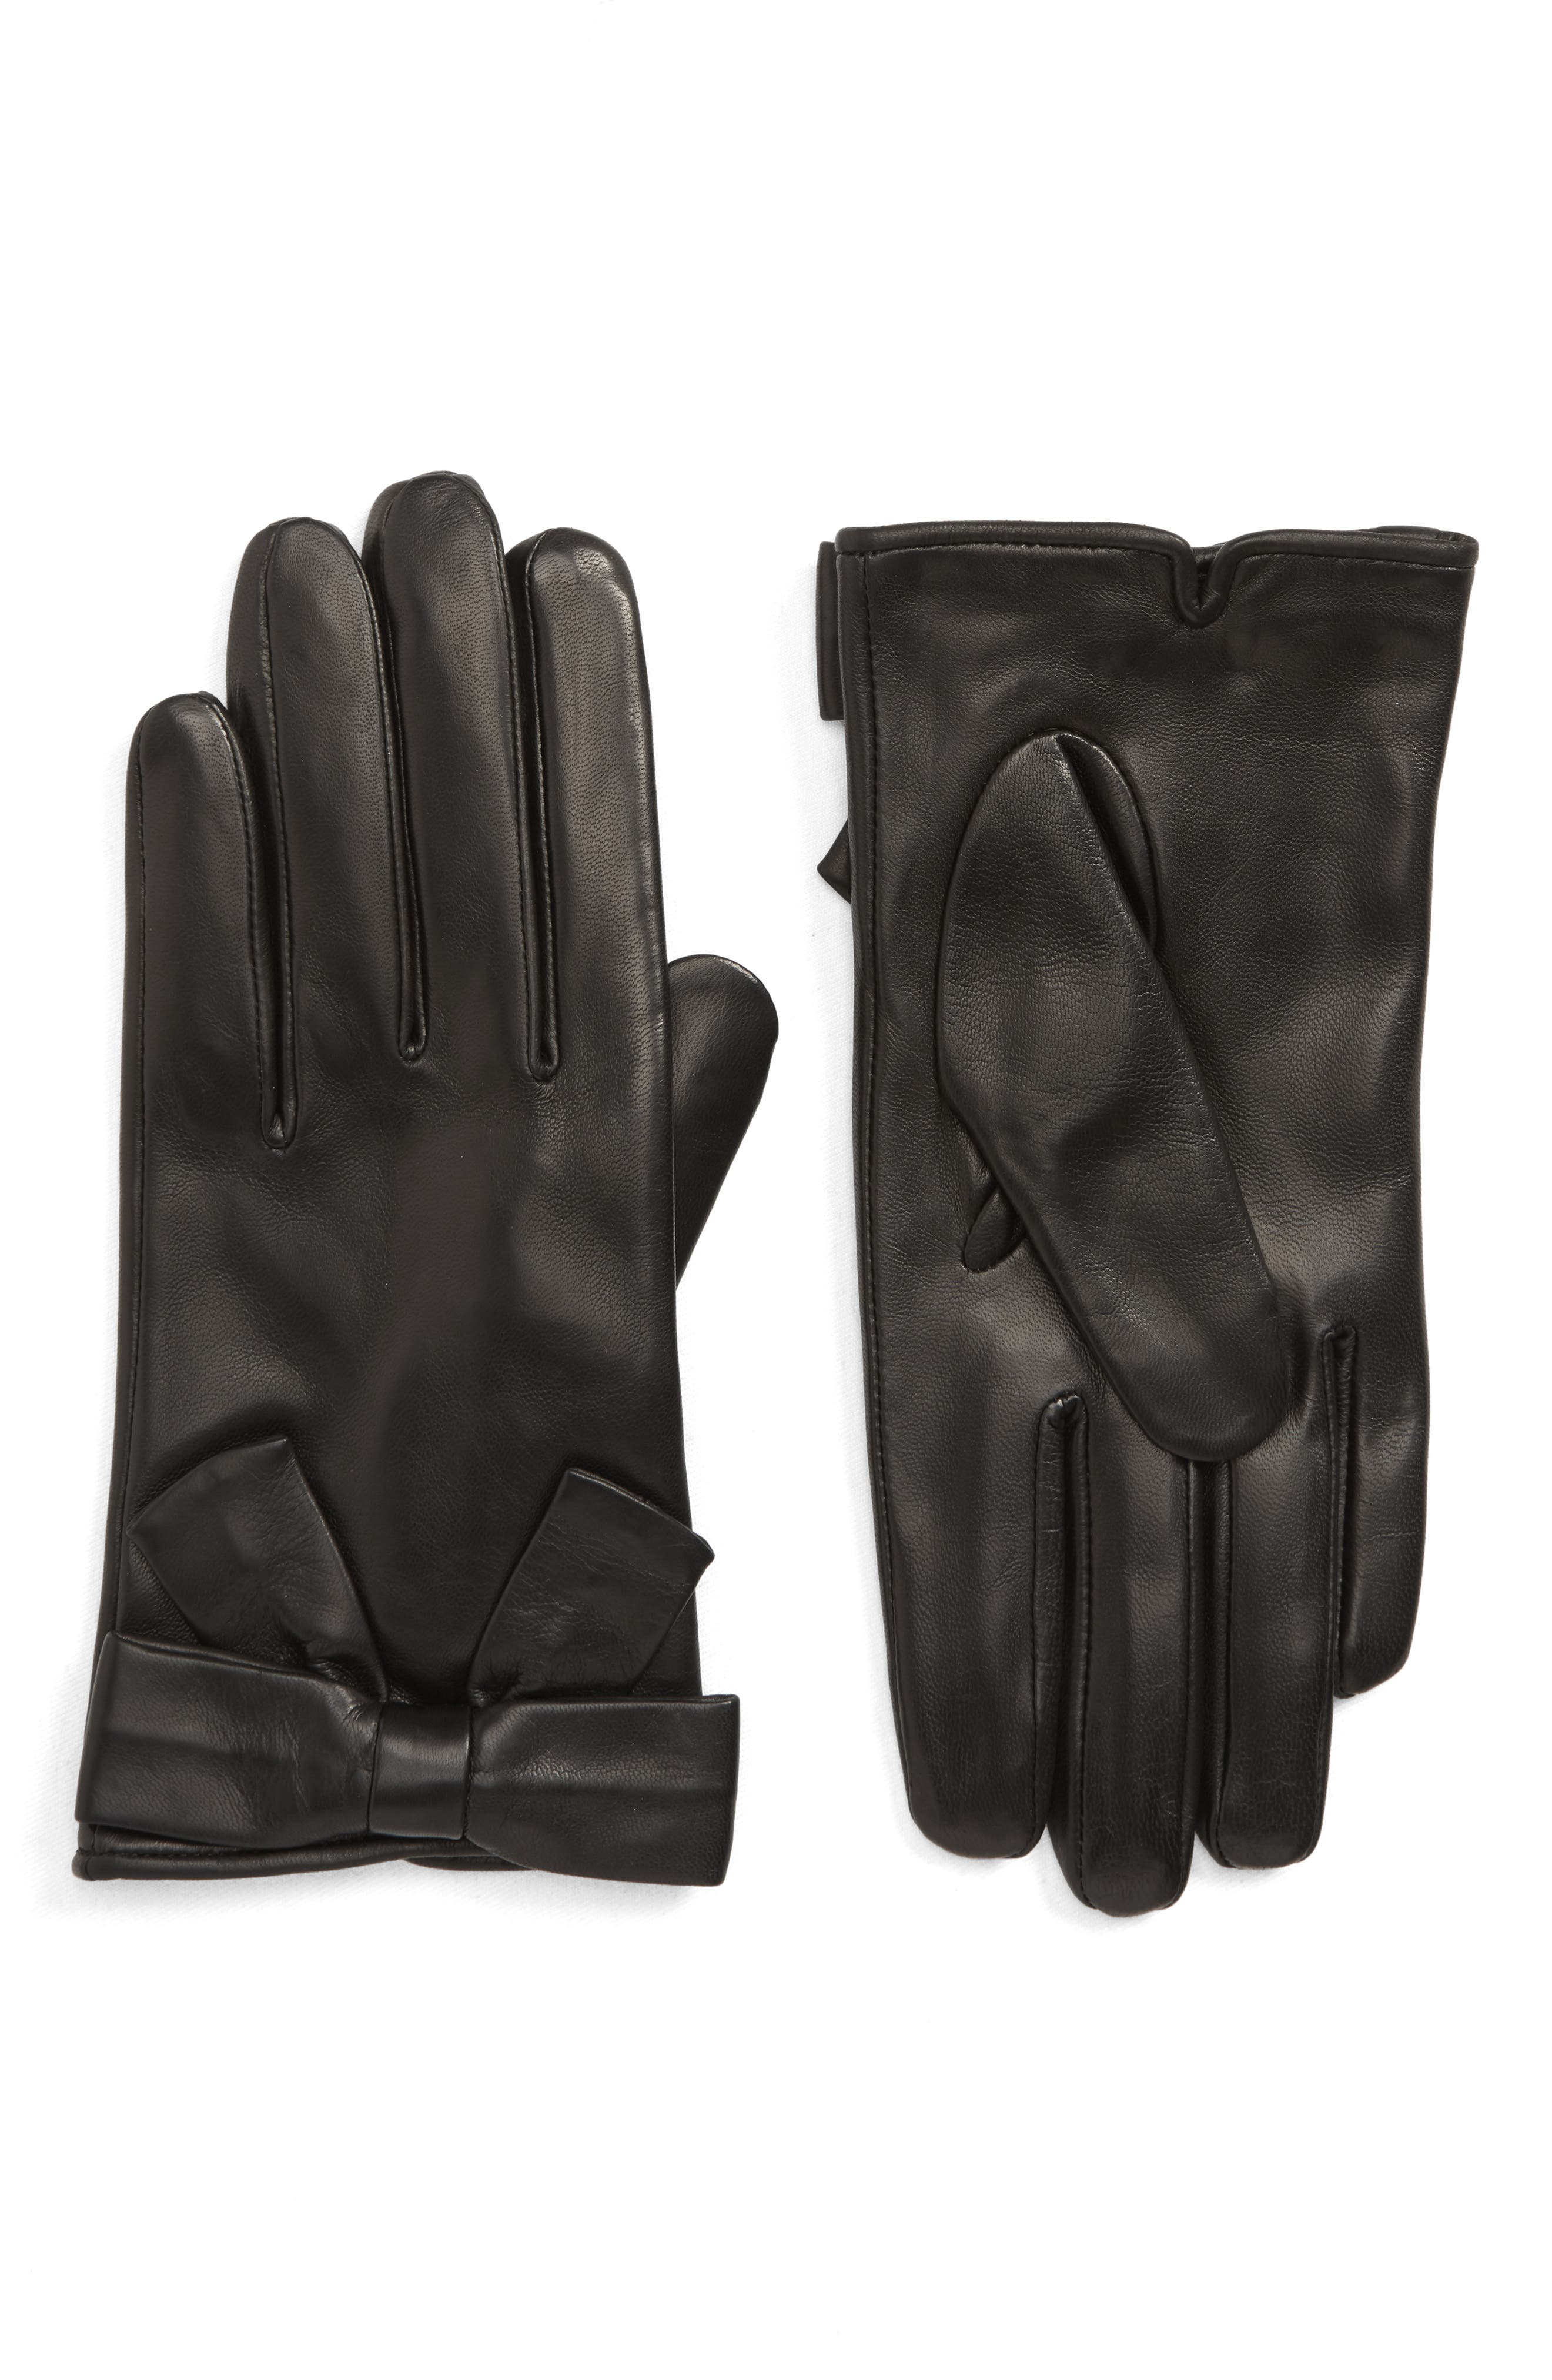 Kate Spade New York Self Knot Bow Leather Gloves